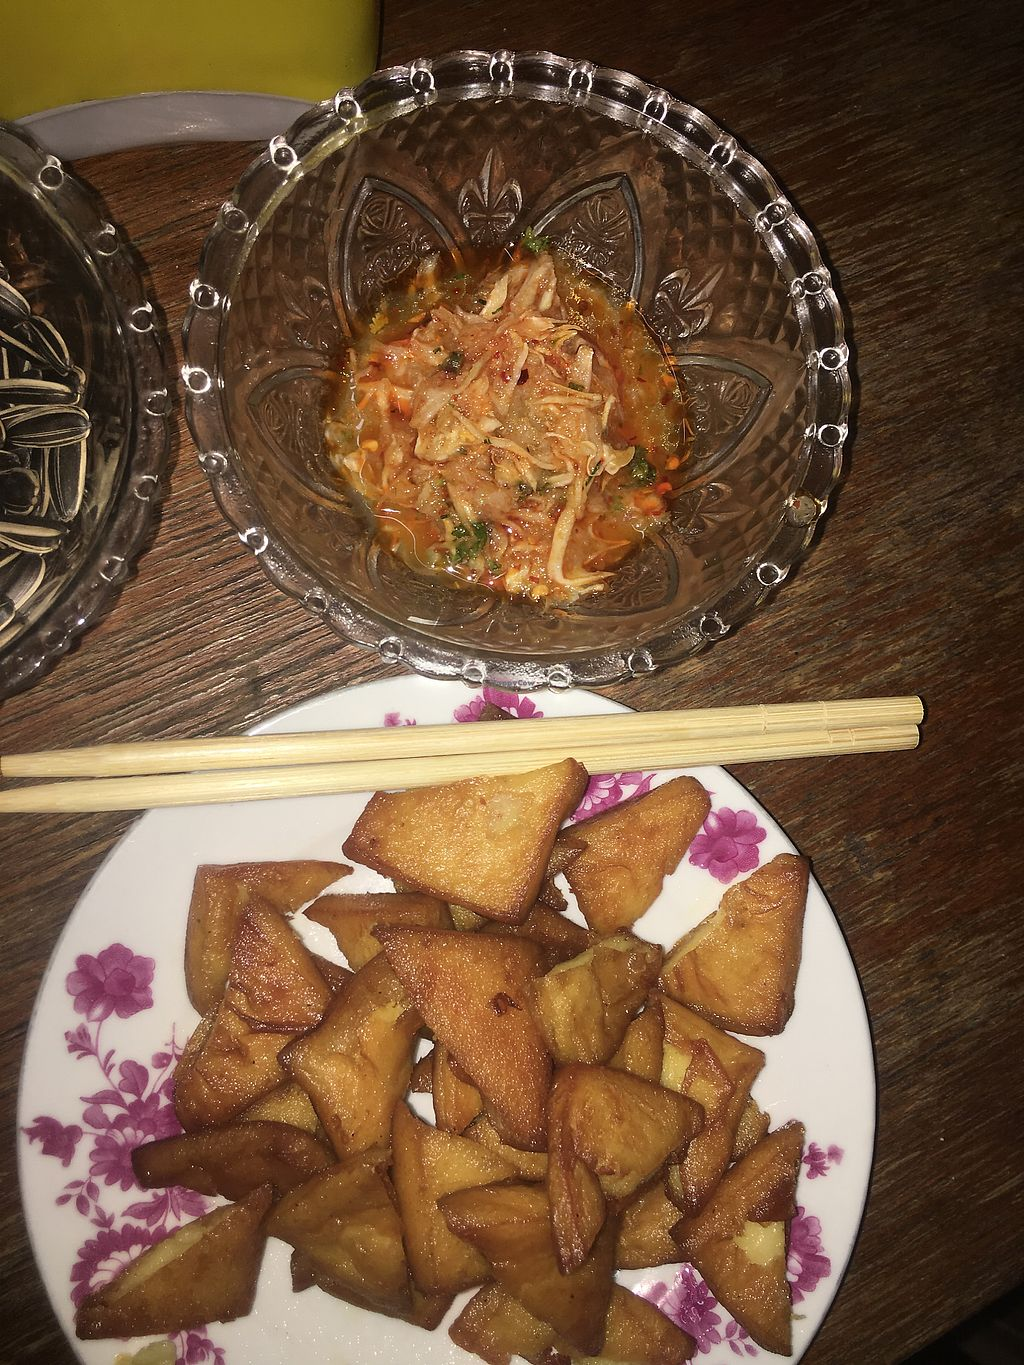 """Photo of Tofu Palace  by <a href=""""/members/profile/KyleMacyHall"""">KyleMacyHall</a> <br/>Best tofu I've ever had, made from chickpeas with unique dipping sauce.  <br/> December 30, 2017  - <a href='/contact/abuse/image/108181/340769'>Report</a>"""